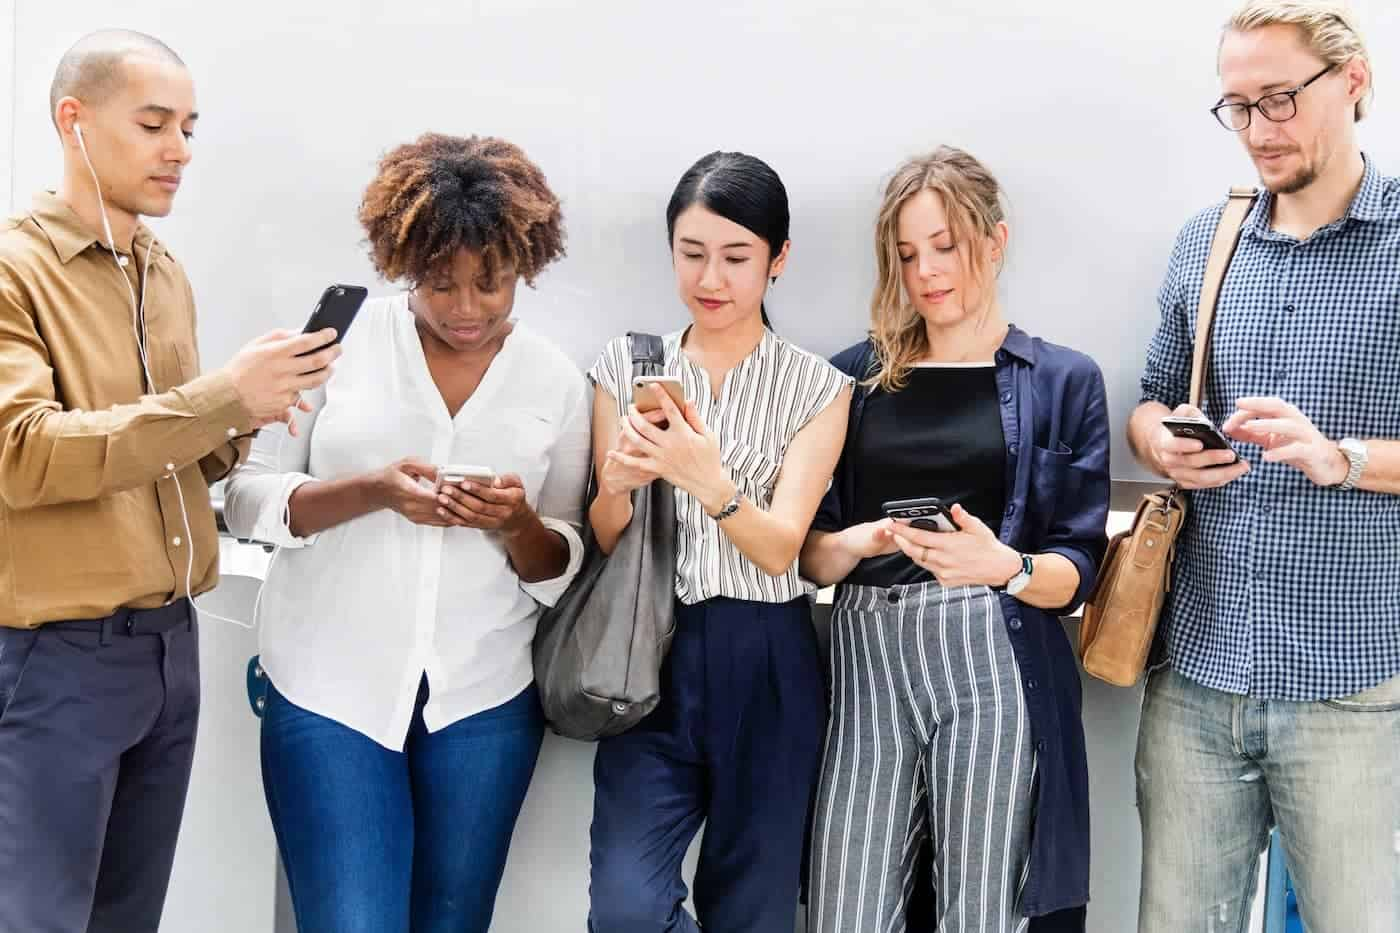 Group of people using their cell phones